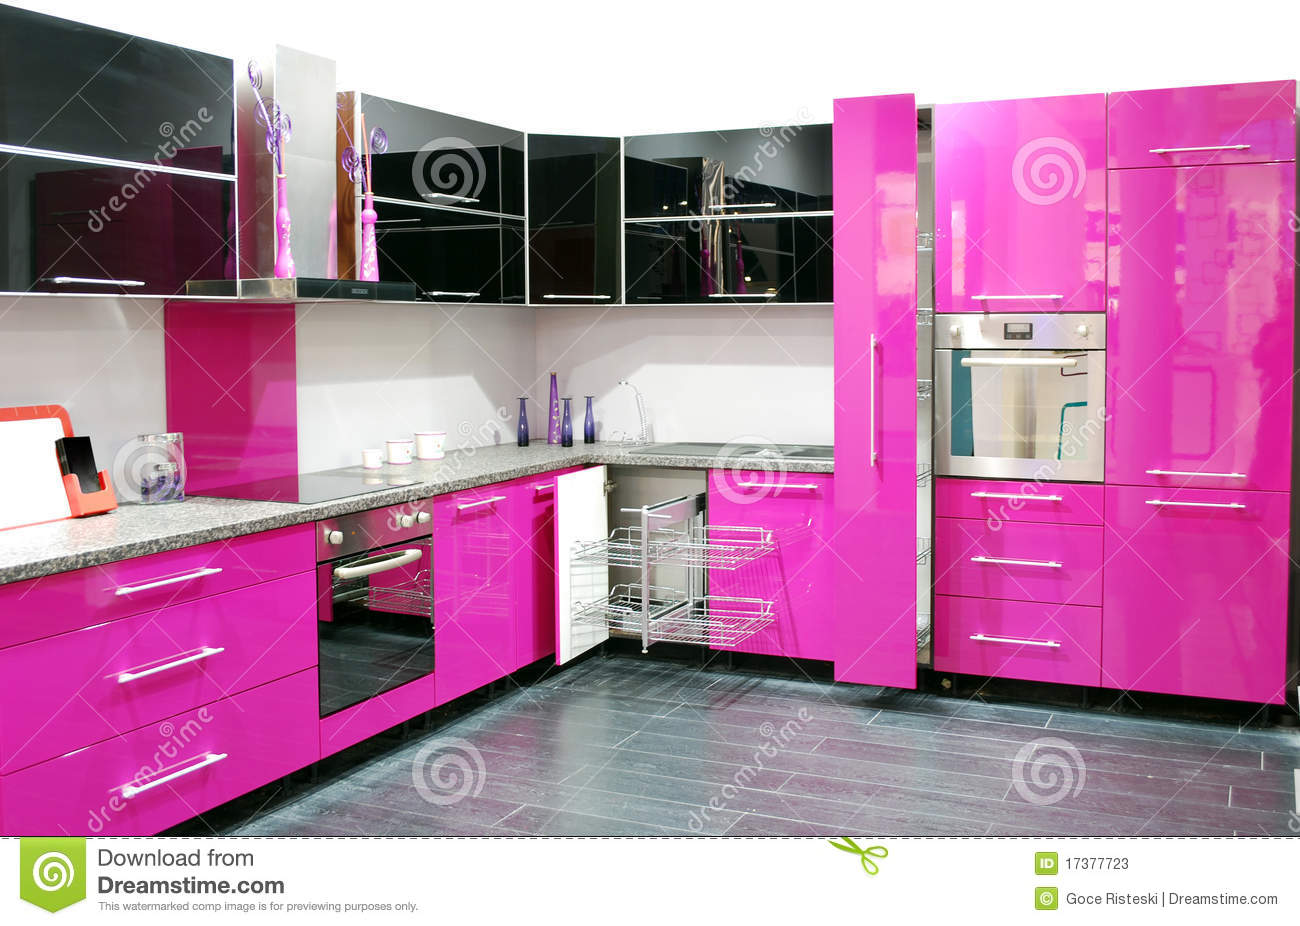 Porta Küchen Pink Kitchen Stock Image. Image Of Contemporary, Style